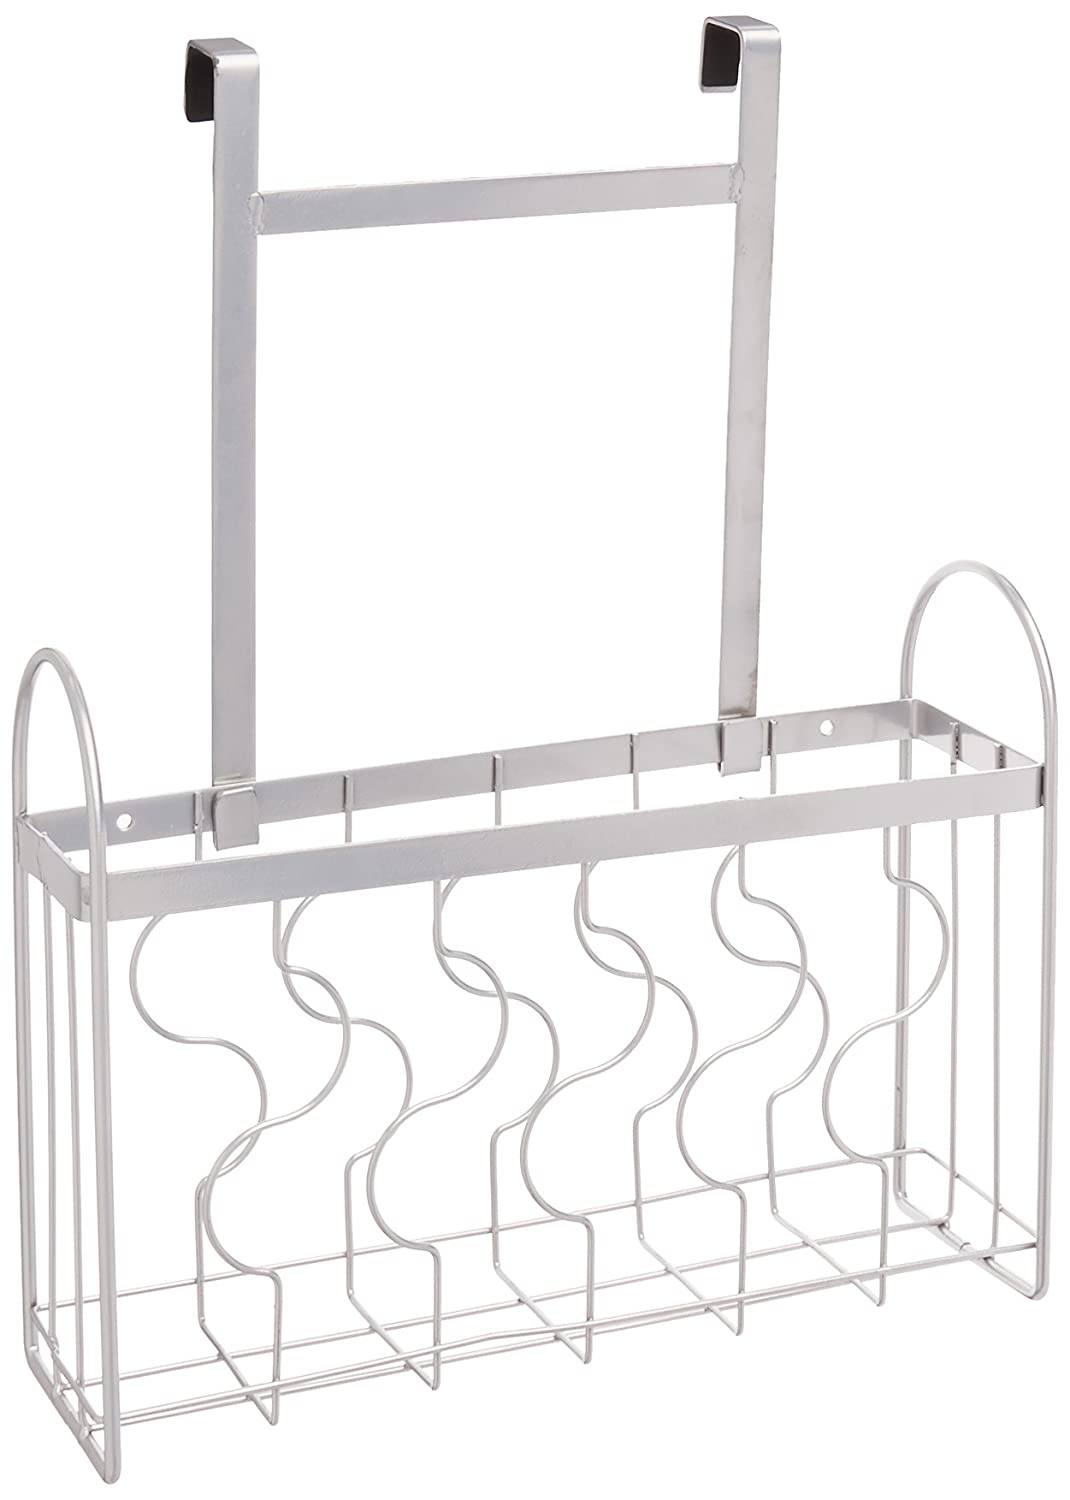 ZESPROKA Over the Cabinet Door Organizer Holder, Silver ZP-10